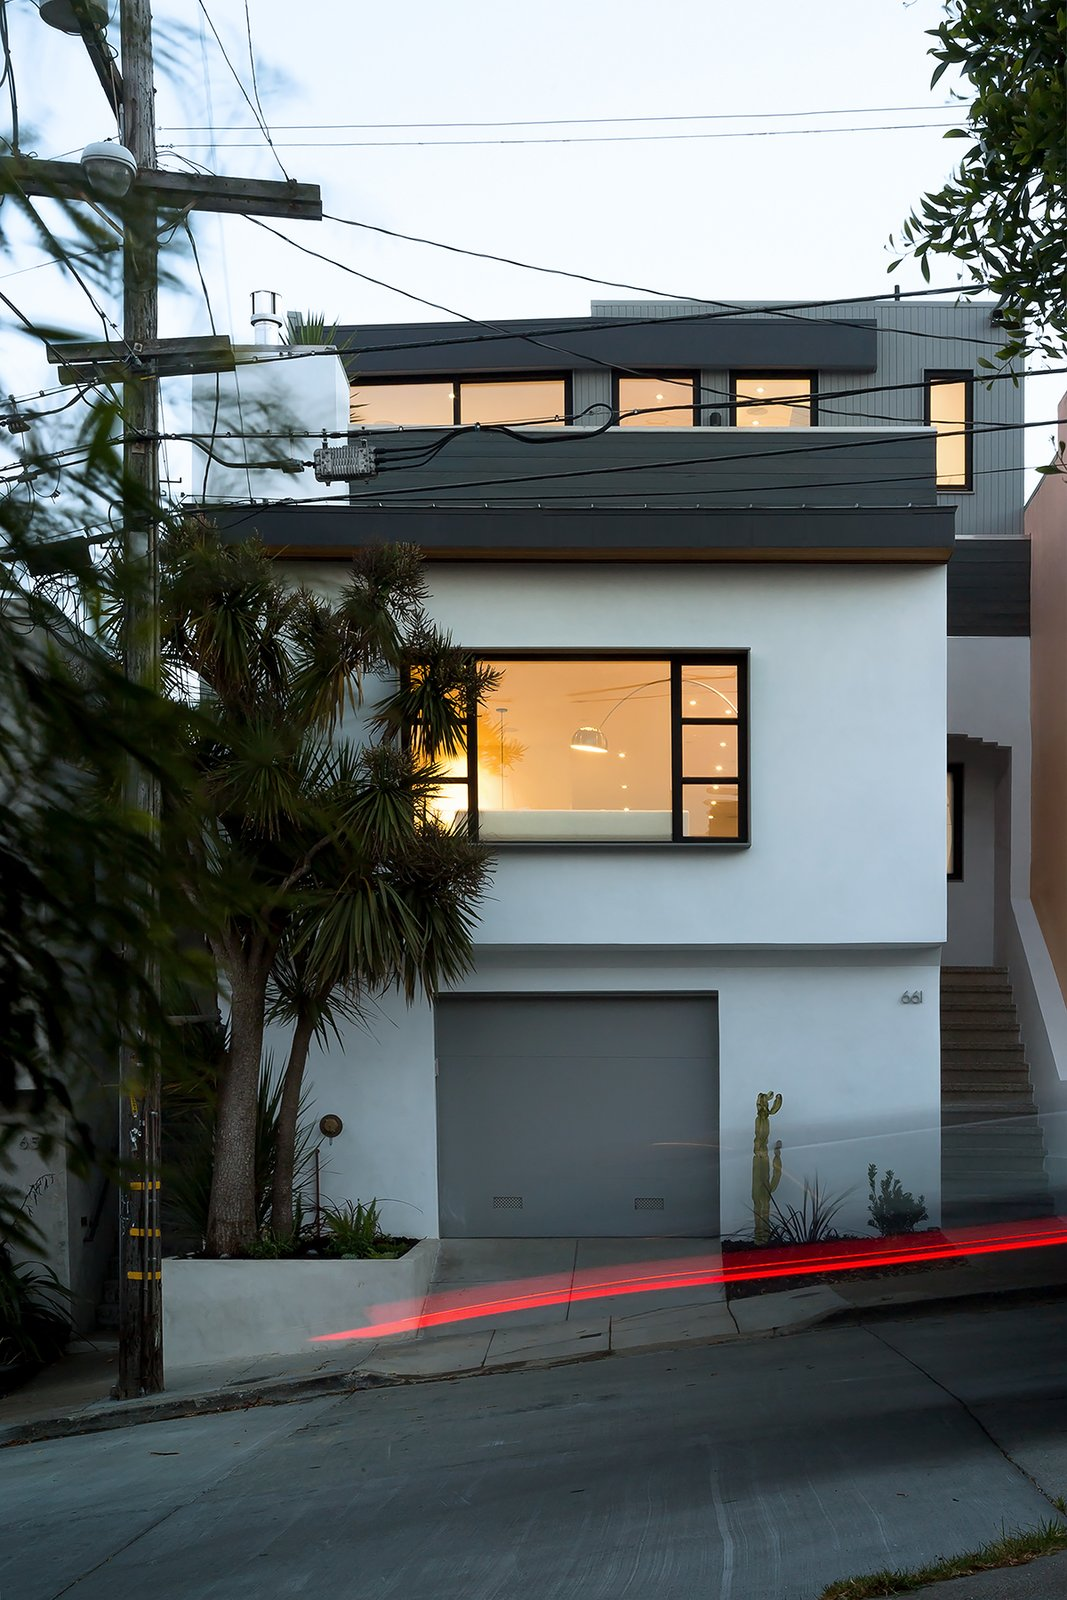 Front facade  27th Street - Noe Valley by patrick perez/designpad architecture